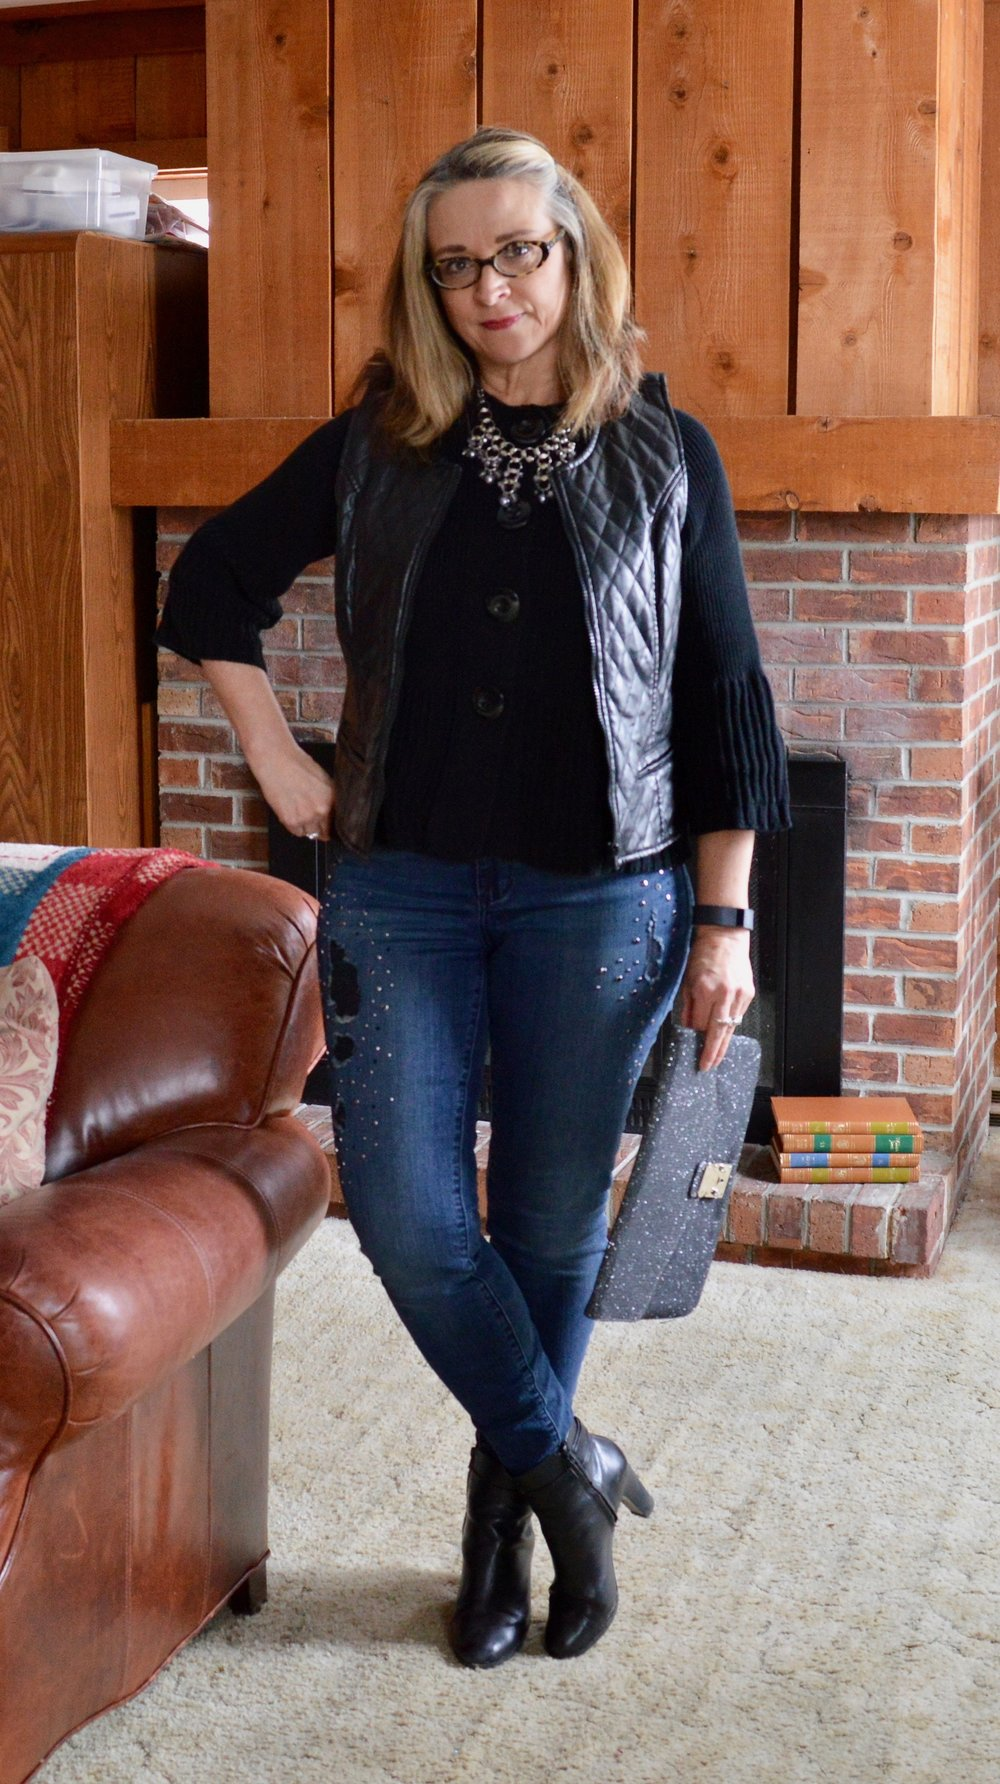 Layering love - wearing a vest over a cardi - short